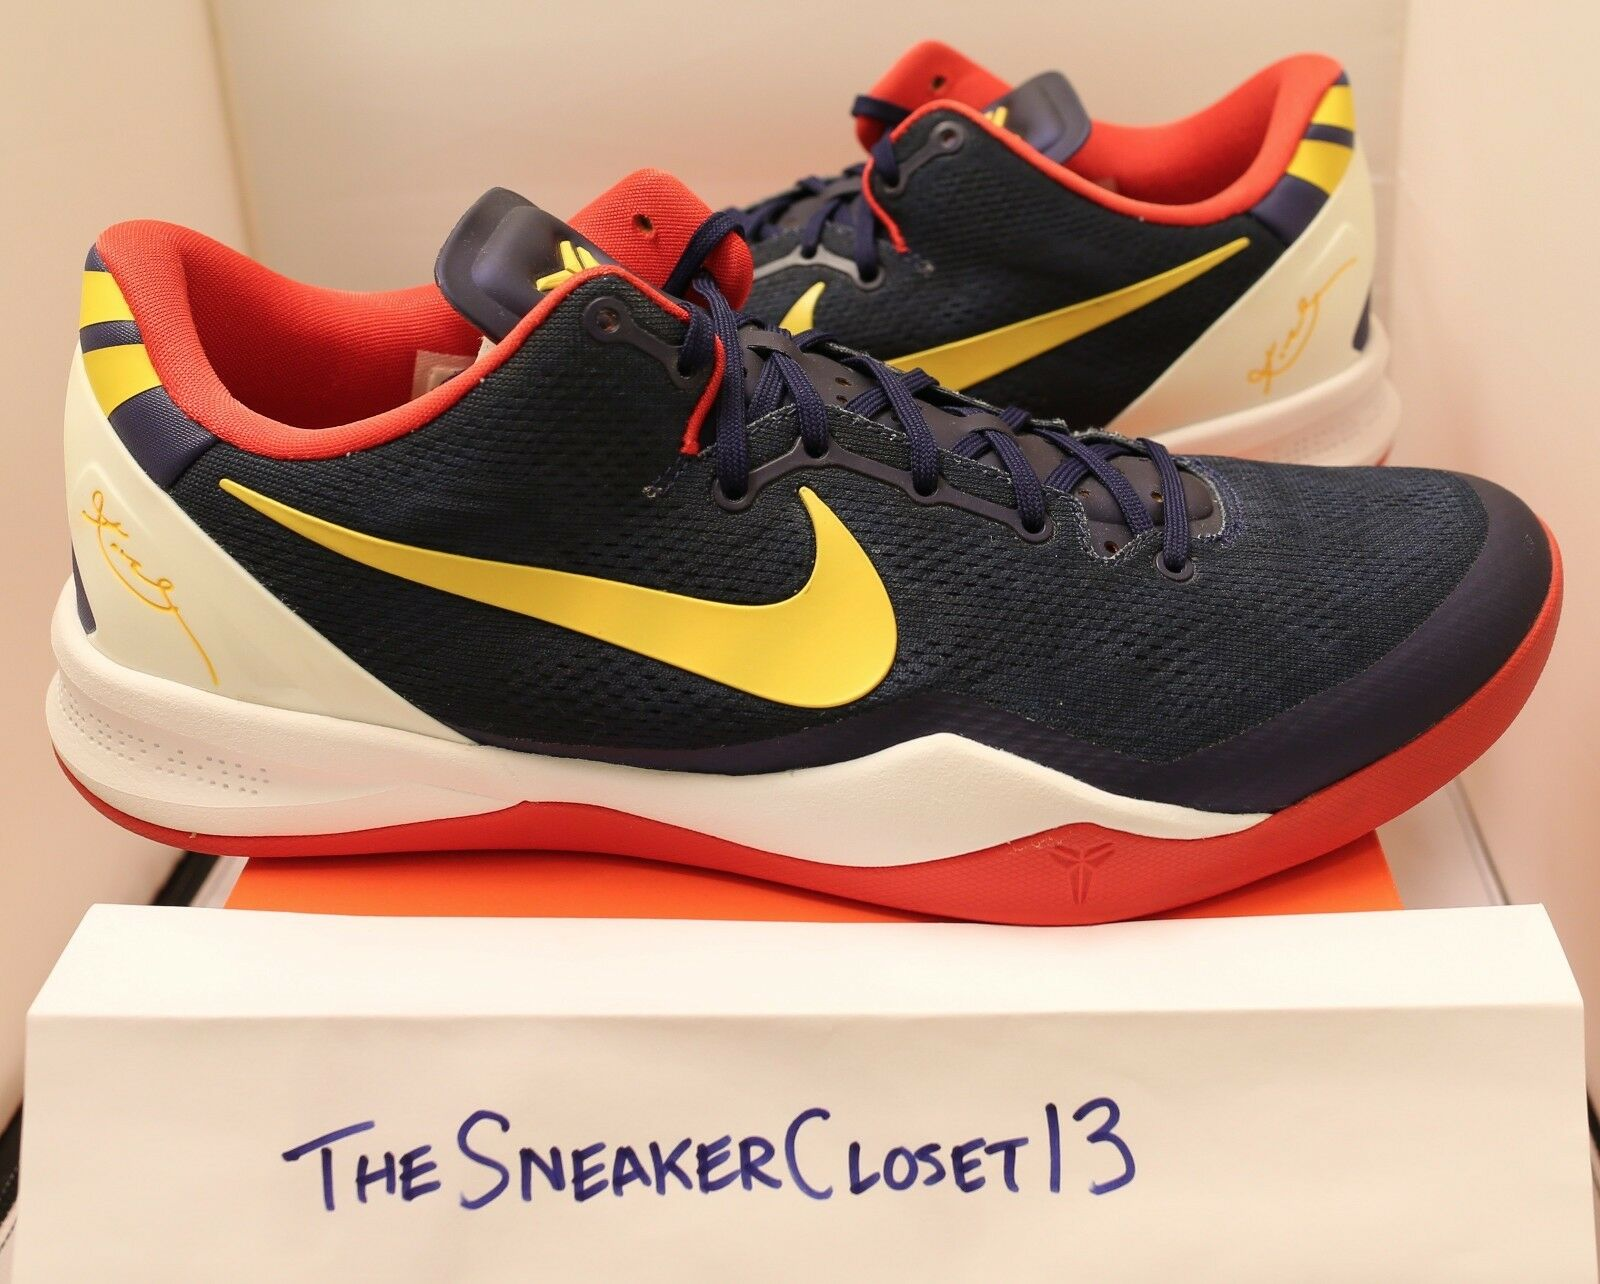 Nike Kobe VIII 8 Promo Sample PE navy blue red yellow Sz 13